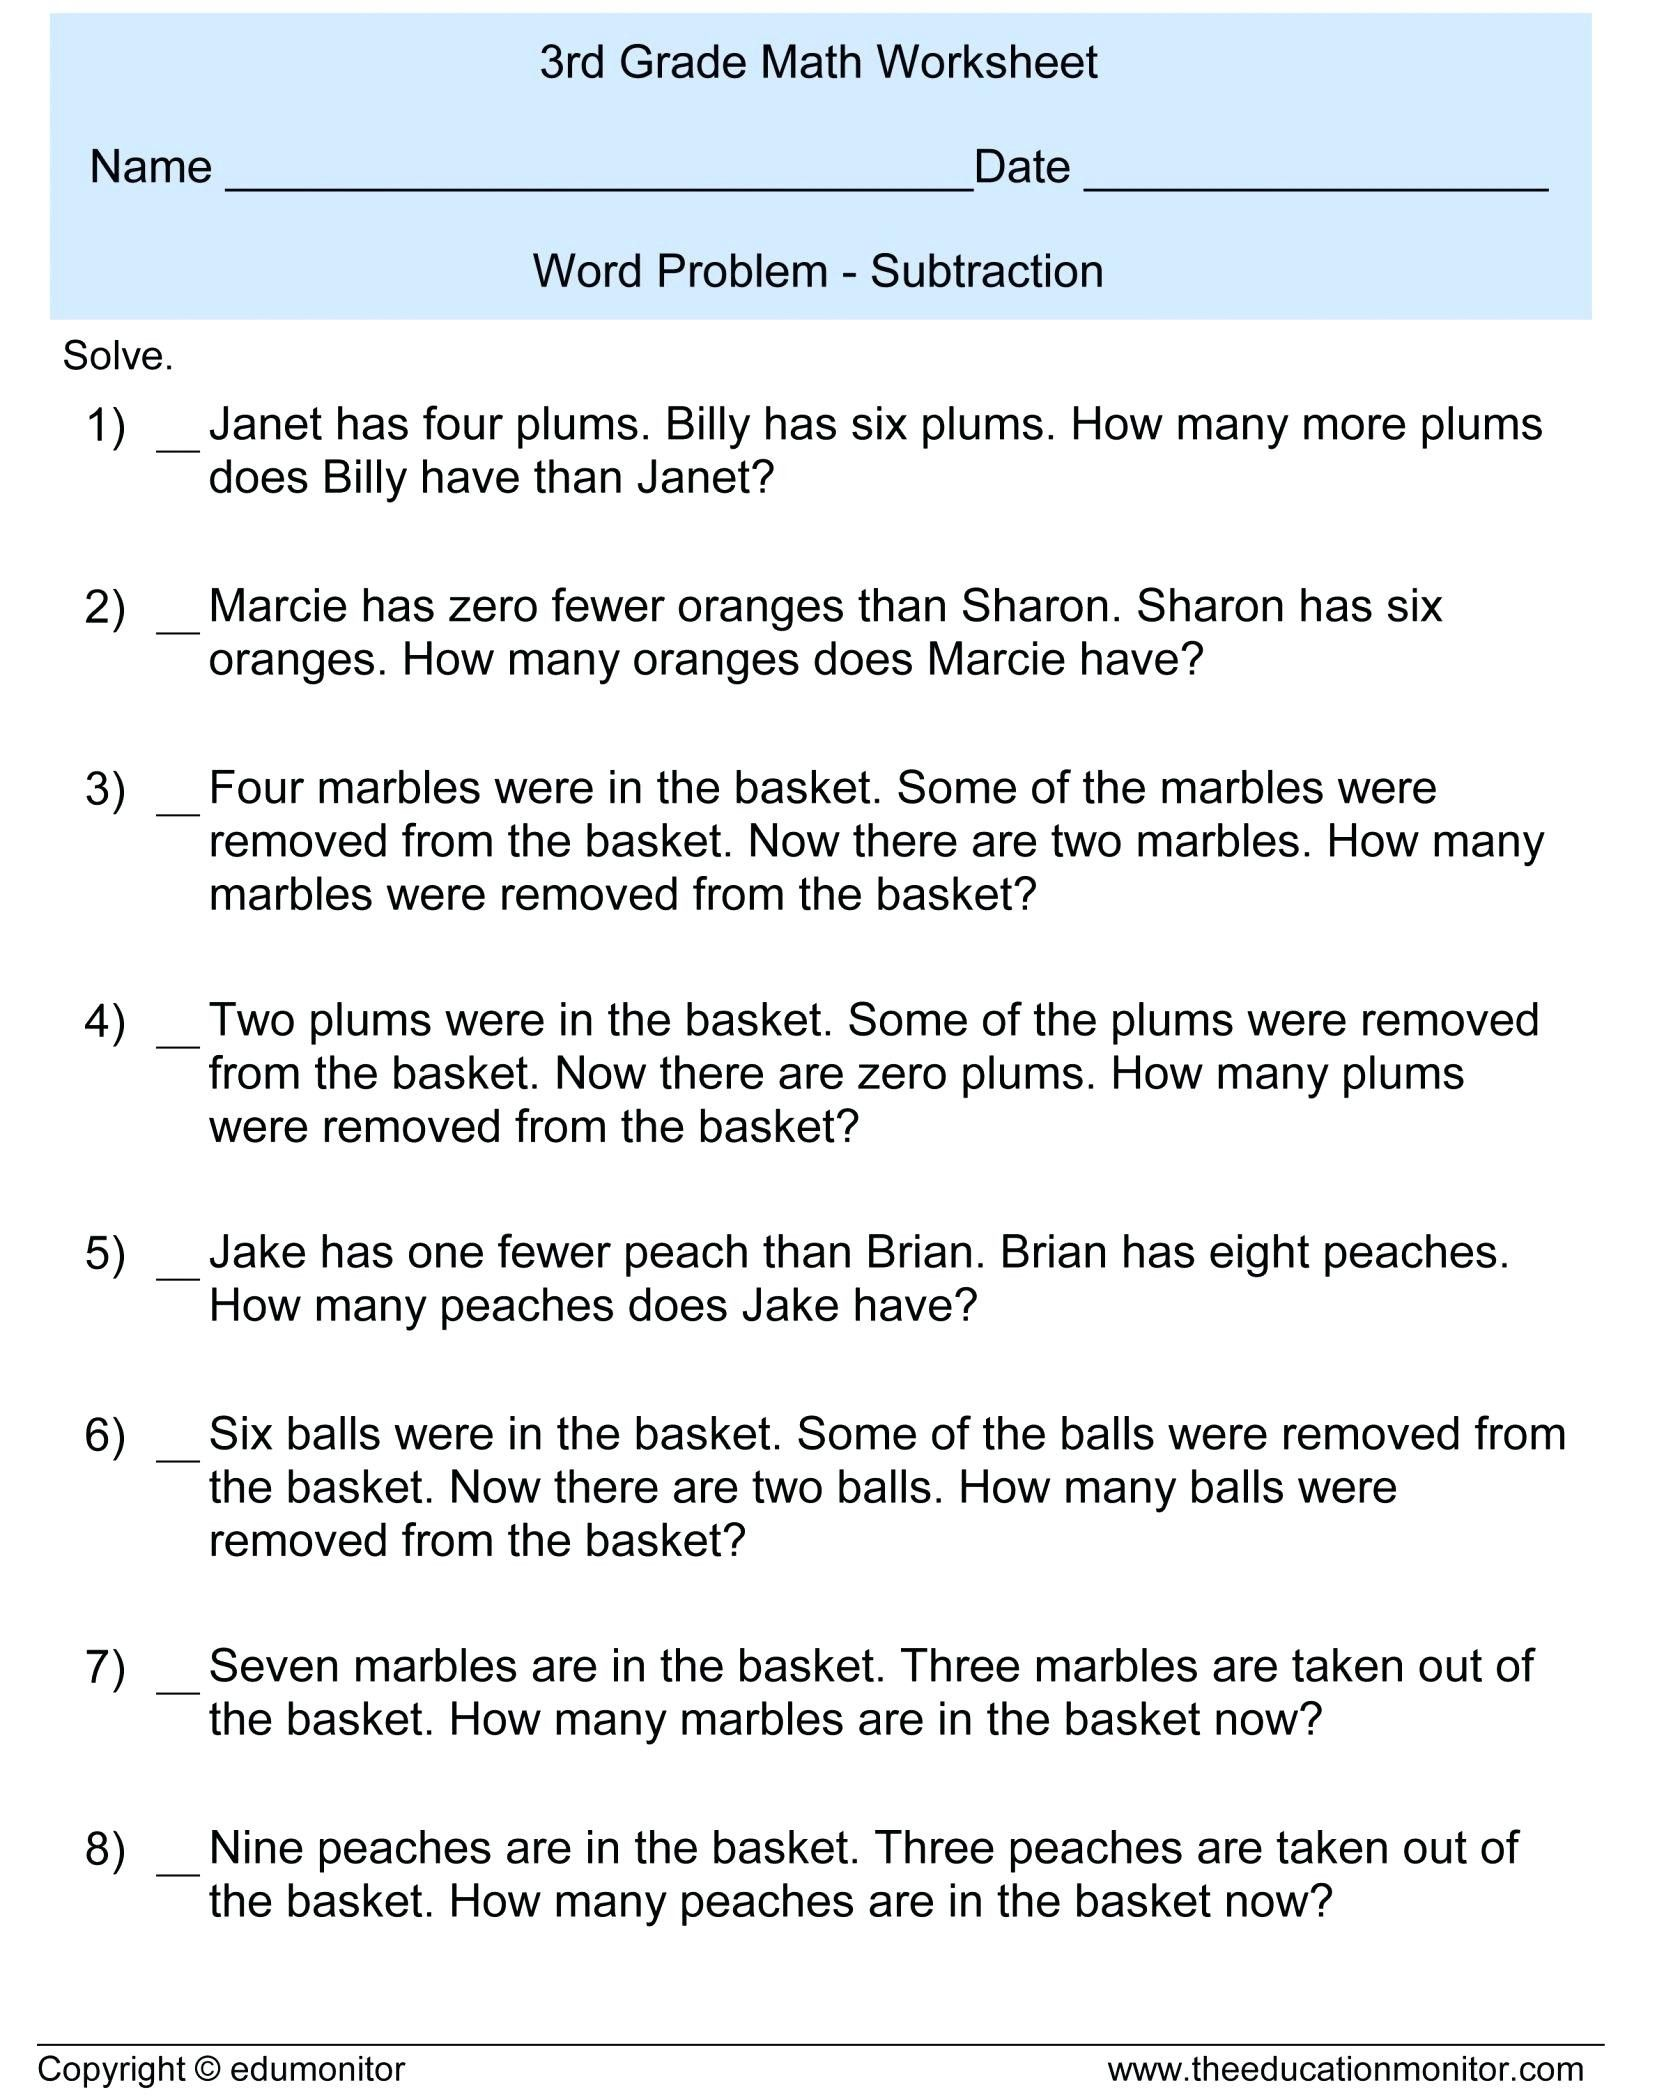 small resolution of Third Grade Math Word Problems Worksheets   Printable Worksheets and  Activities for Teachers